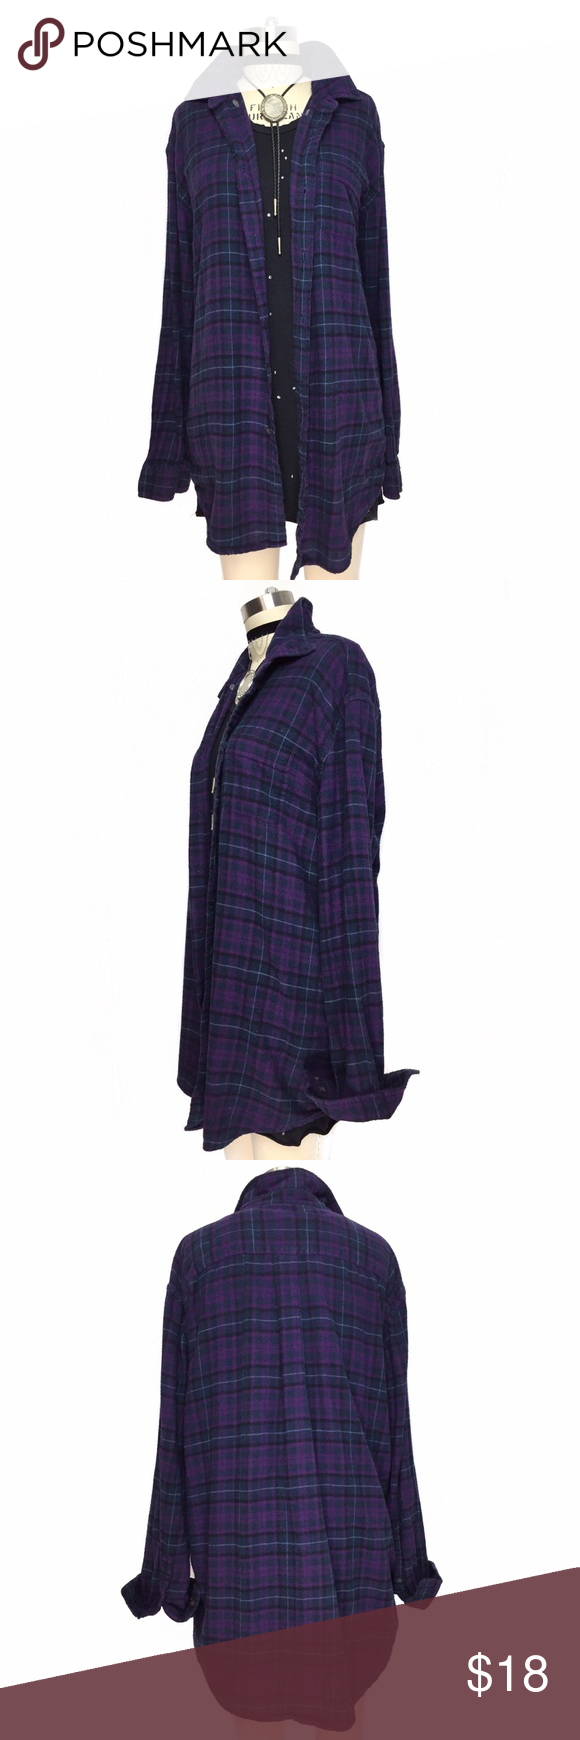 COZY WORN IN SUPER SOFT COTTON BUTTON DOWN FLANNEL OVERSIZED COZY WORN IN SUPER SOFT COTTON BUTTON DOWN FLANNEL!! 100% cotton worn in fabric! The PERFECT grab and go FLANNEL! Purple, navy and black color way is perfect for any season!! Vintage Tops Button Down Shirts